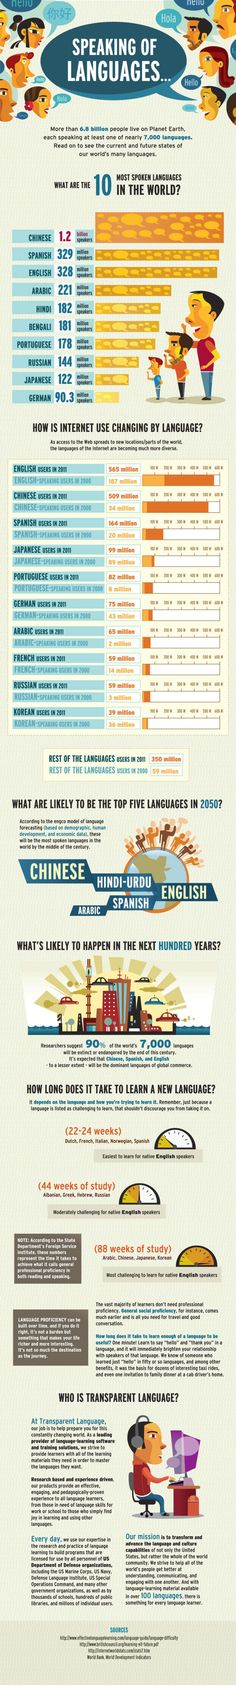 Speaking of Languages...